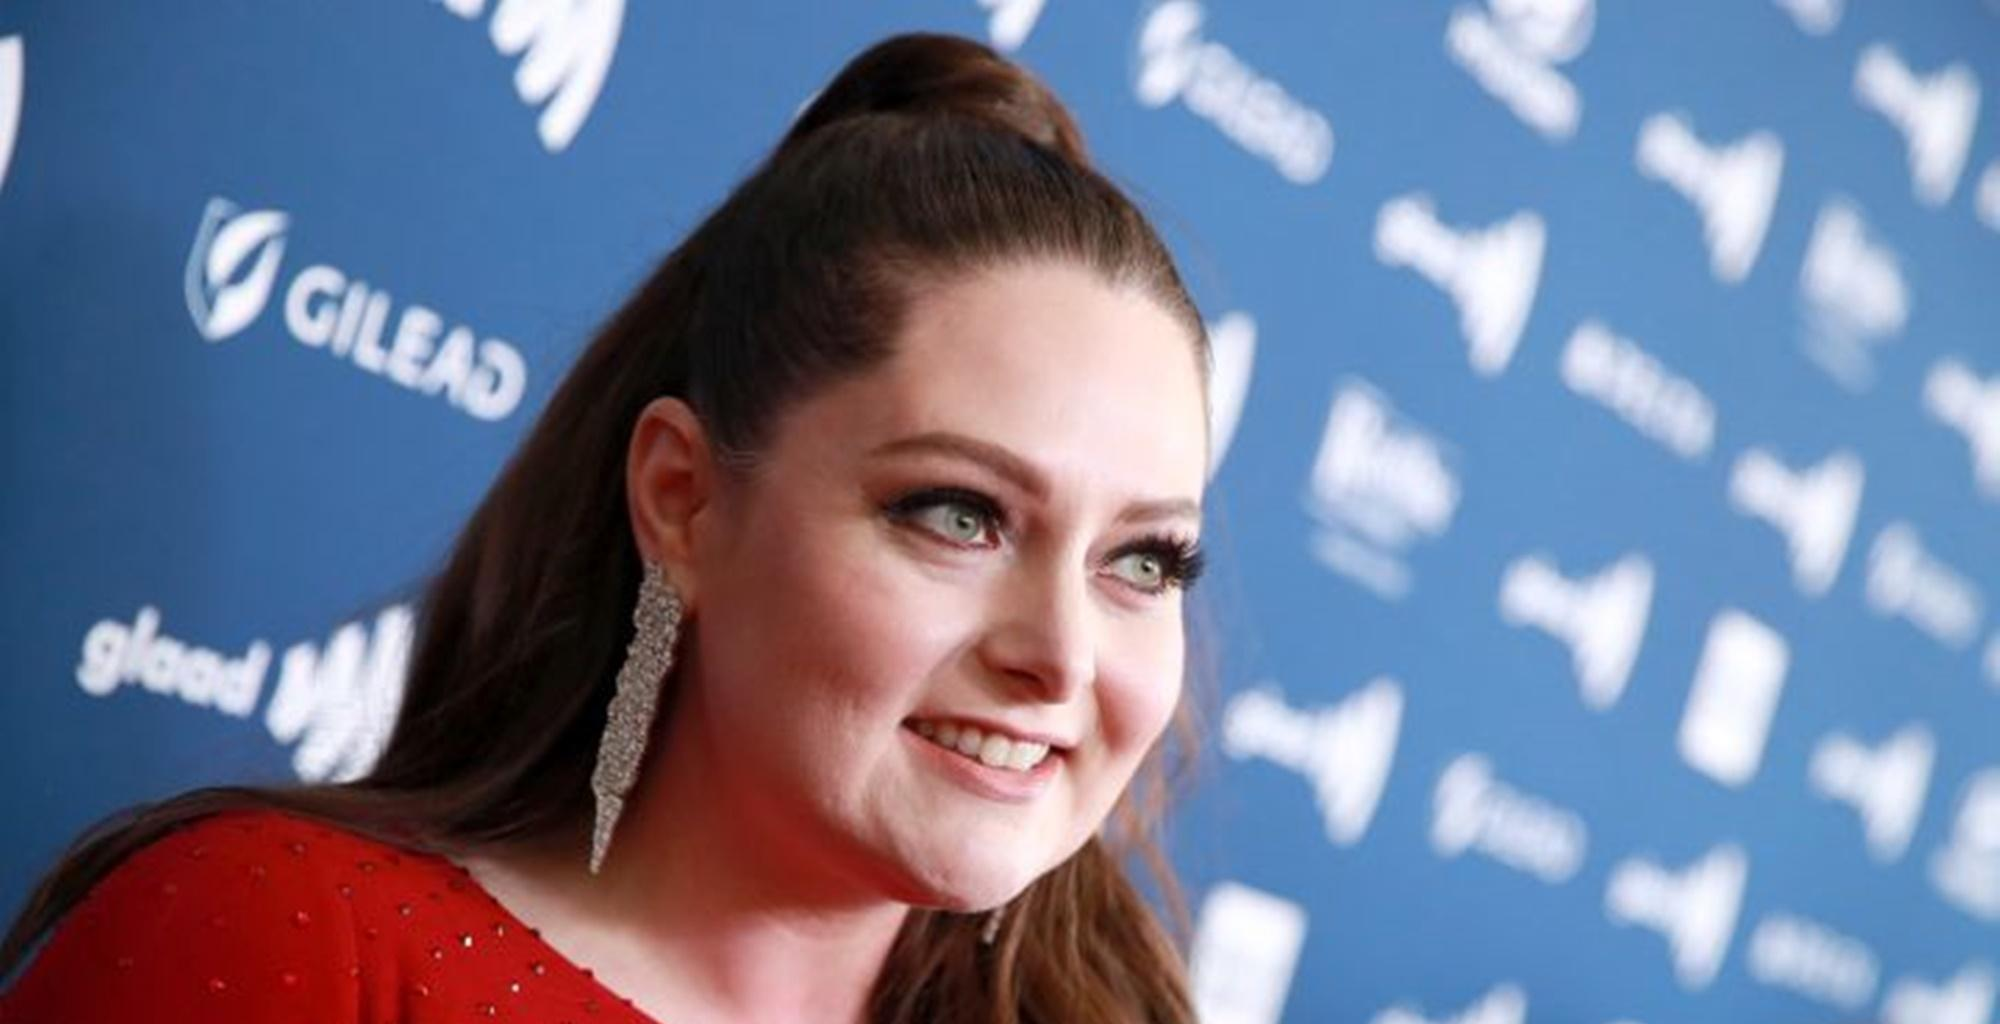 Lauren Ash Of 'Superstore' Fame Says Battle With PCOS Made Her Contemplate Suicide